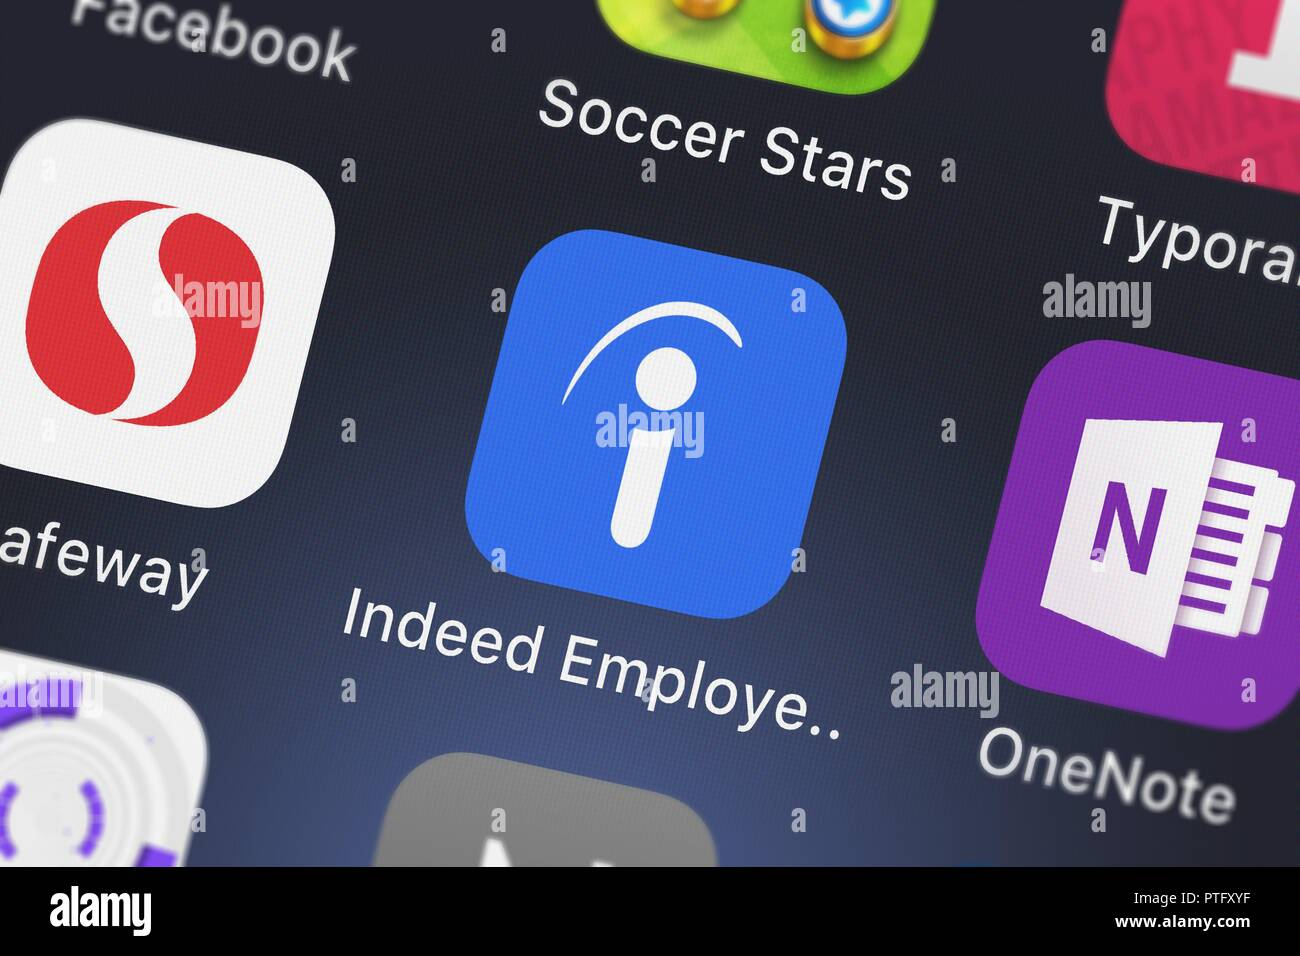 London, United Kingdom - October 09, 2018: Close-up shot of the Indeed Employer mobile app from Indeed Inc.. - Stock Image